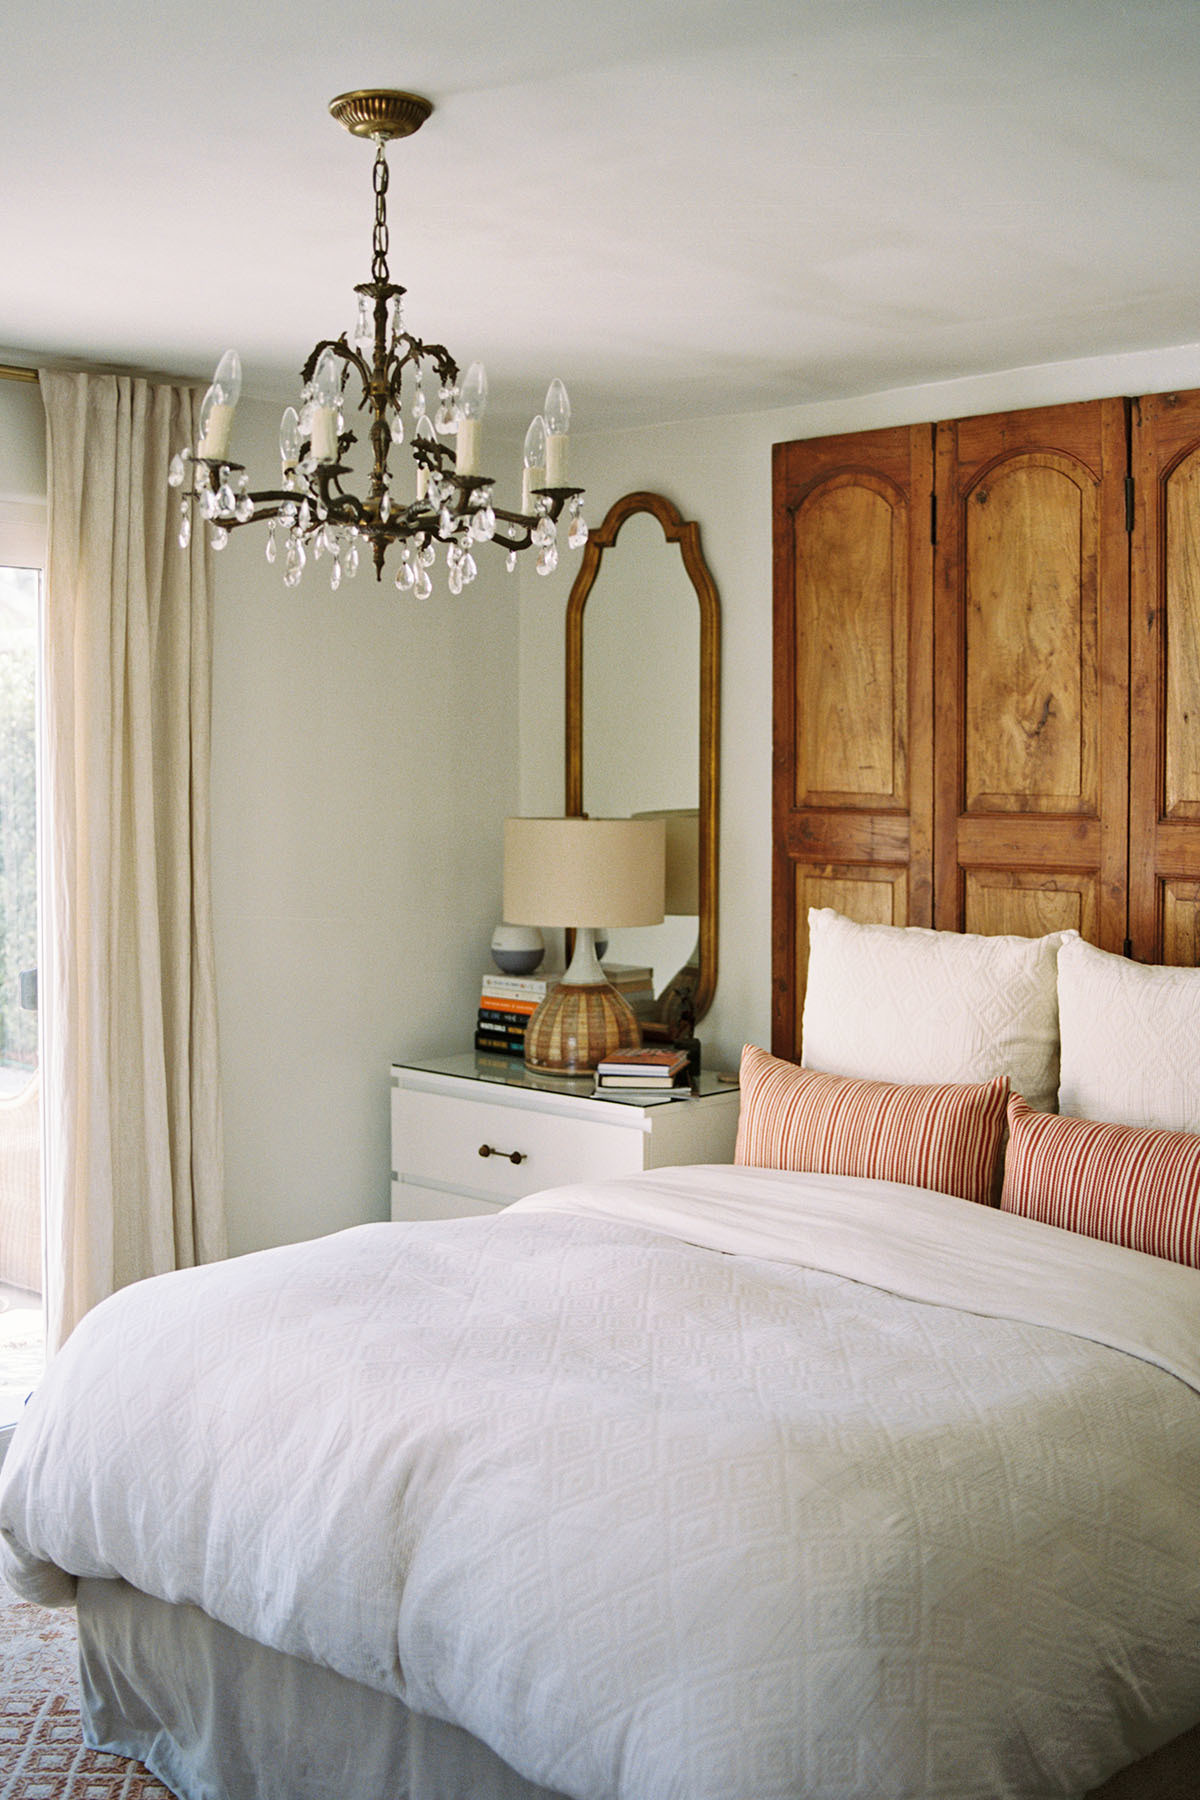 Madison repurposed a set of old church doors, sourced via the Long Beach Flea Market to create a custom headboard in the couple's bedroom. Rejuvenation Bedding | Ralph Lauren Throw Pillows | Melrose Flea Market Vintage Mirror | IKEA Nightstand | Anthropologie Hardware.